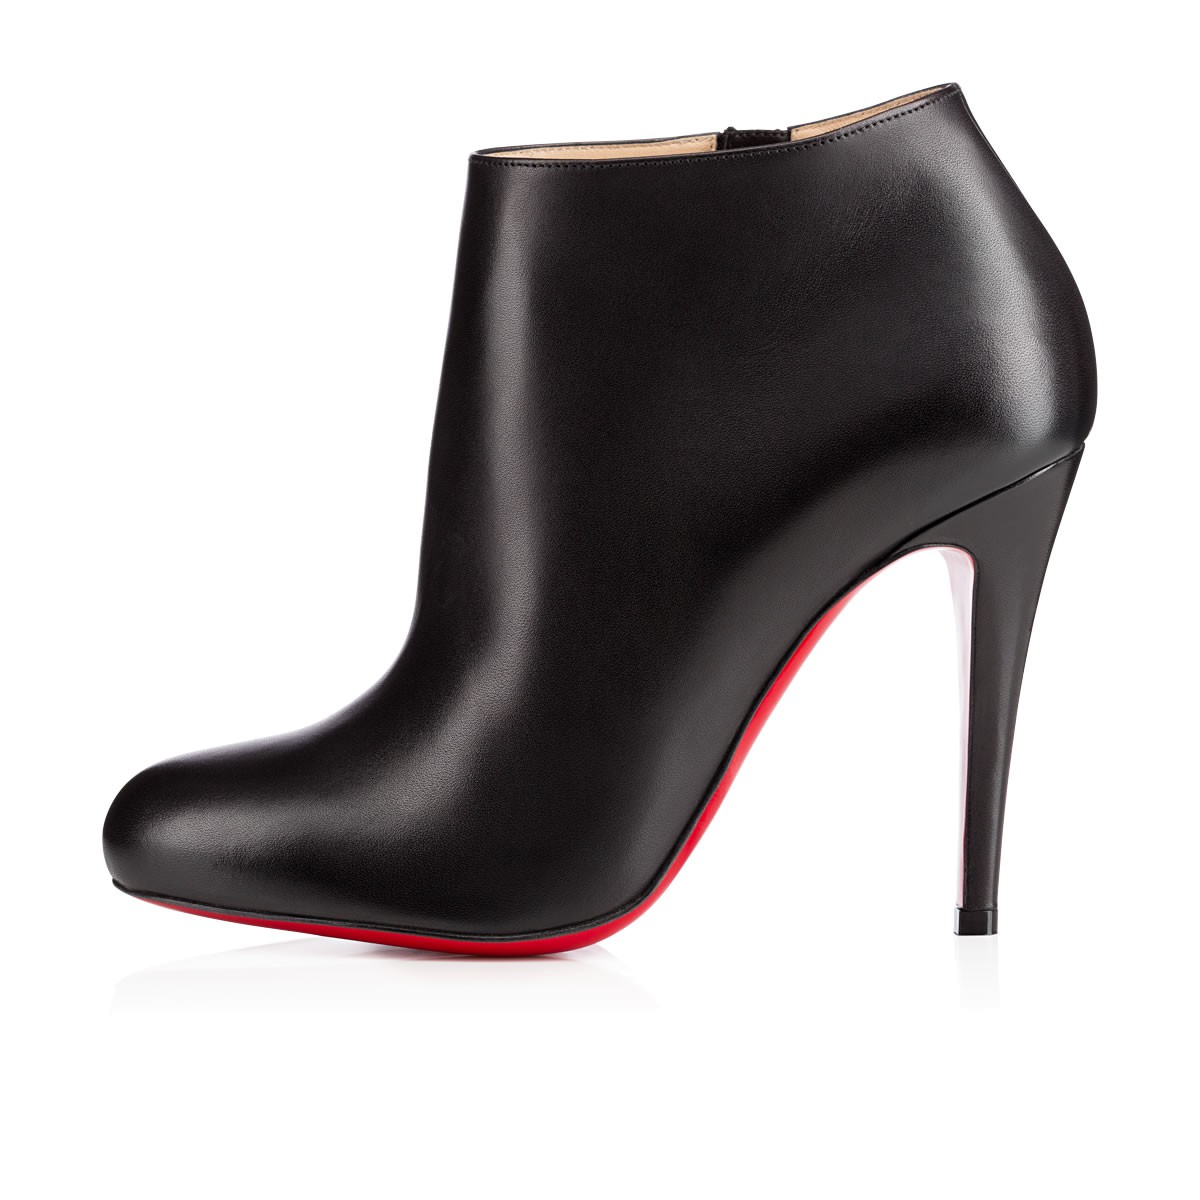 Shoes - Belle - Christian Louboutin Shoes - Belle - Christian Louboutin ... 19be5a966c0c